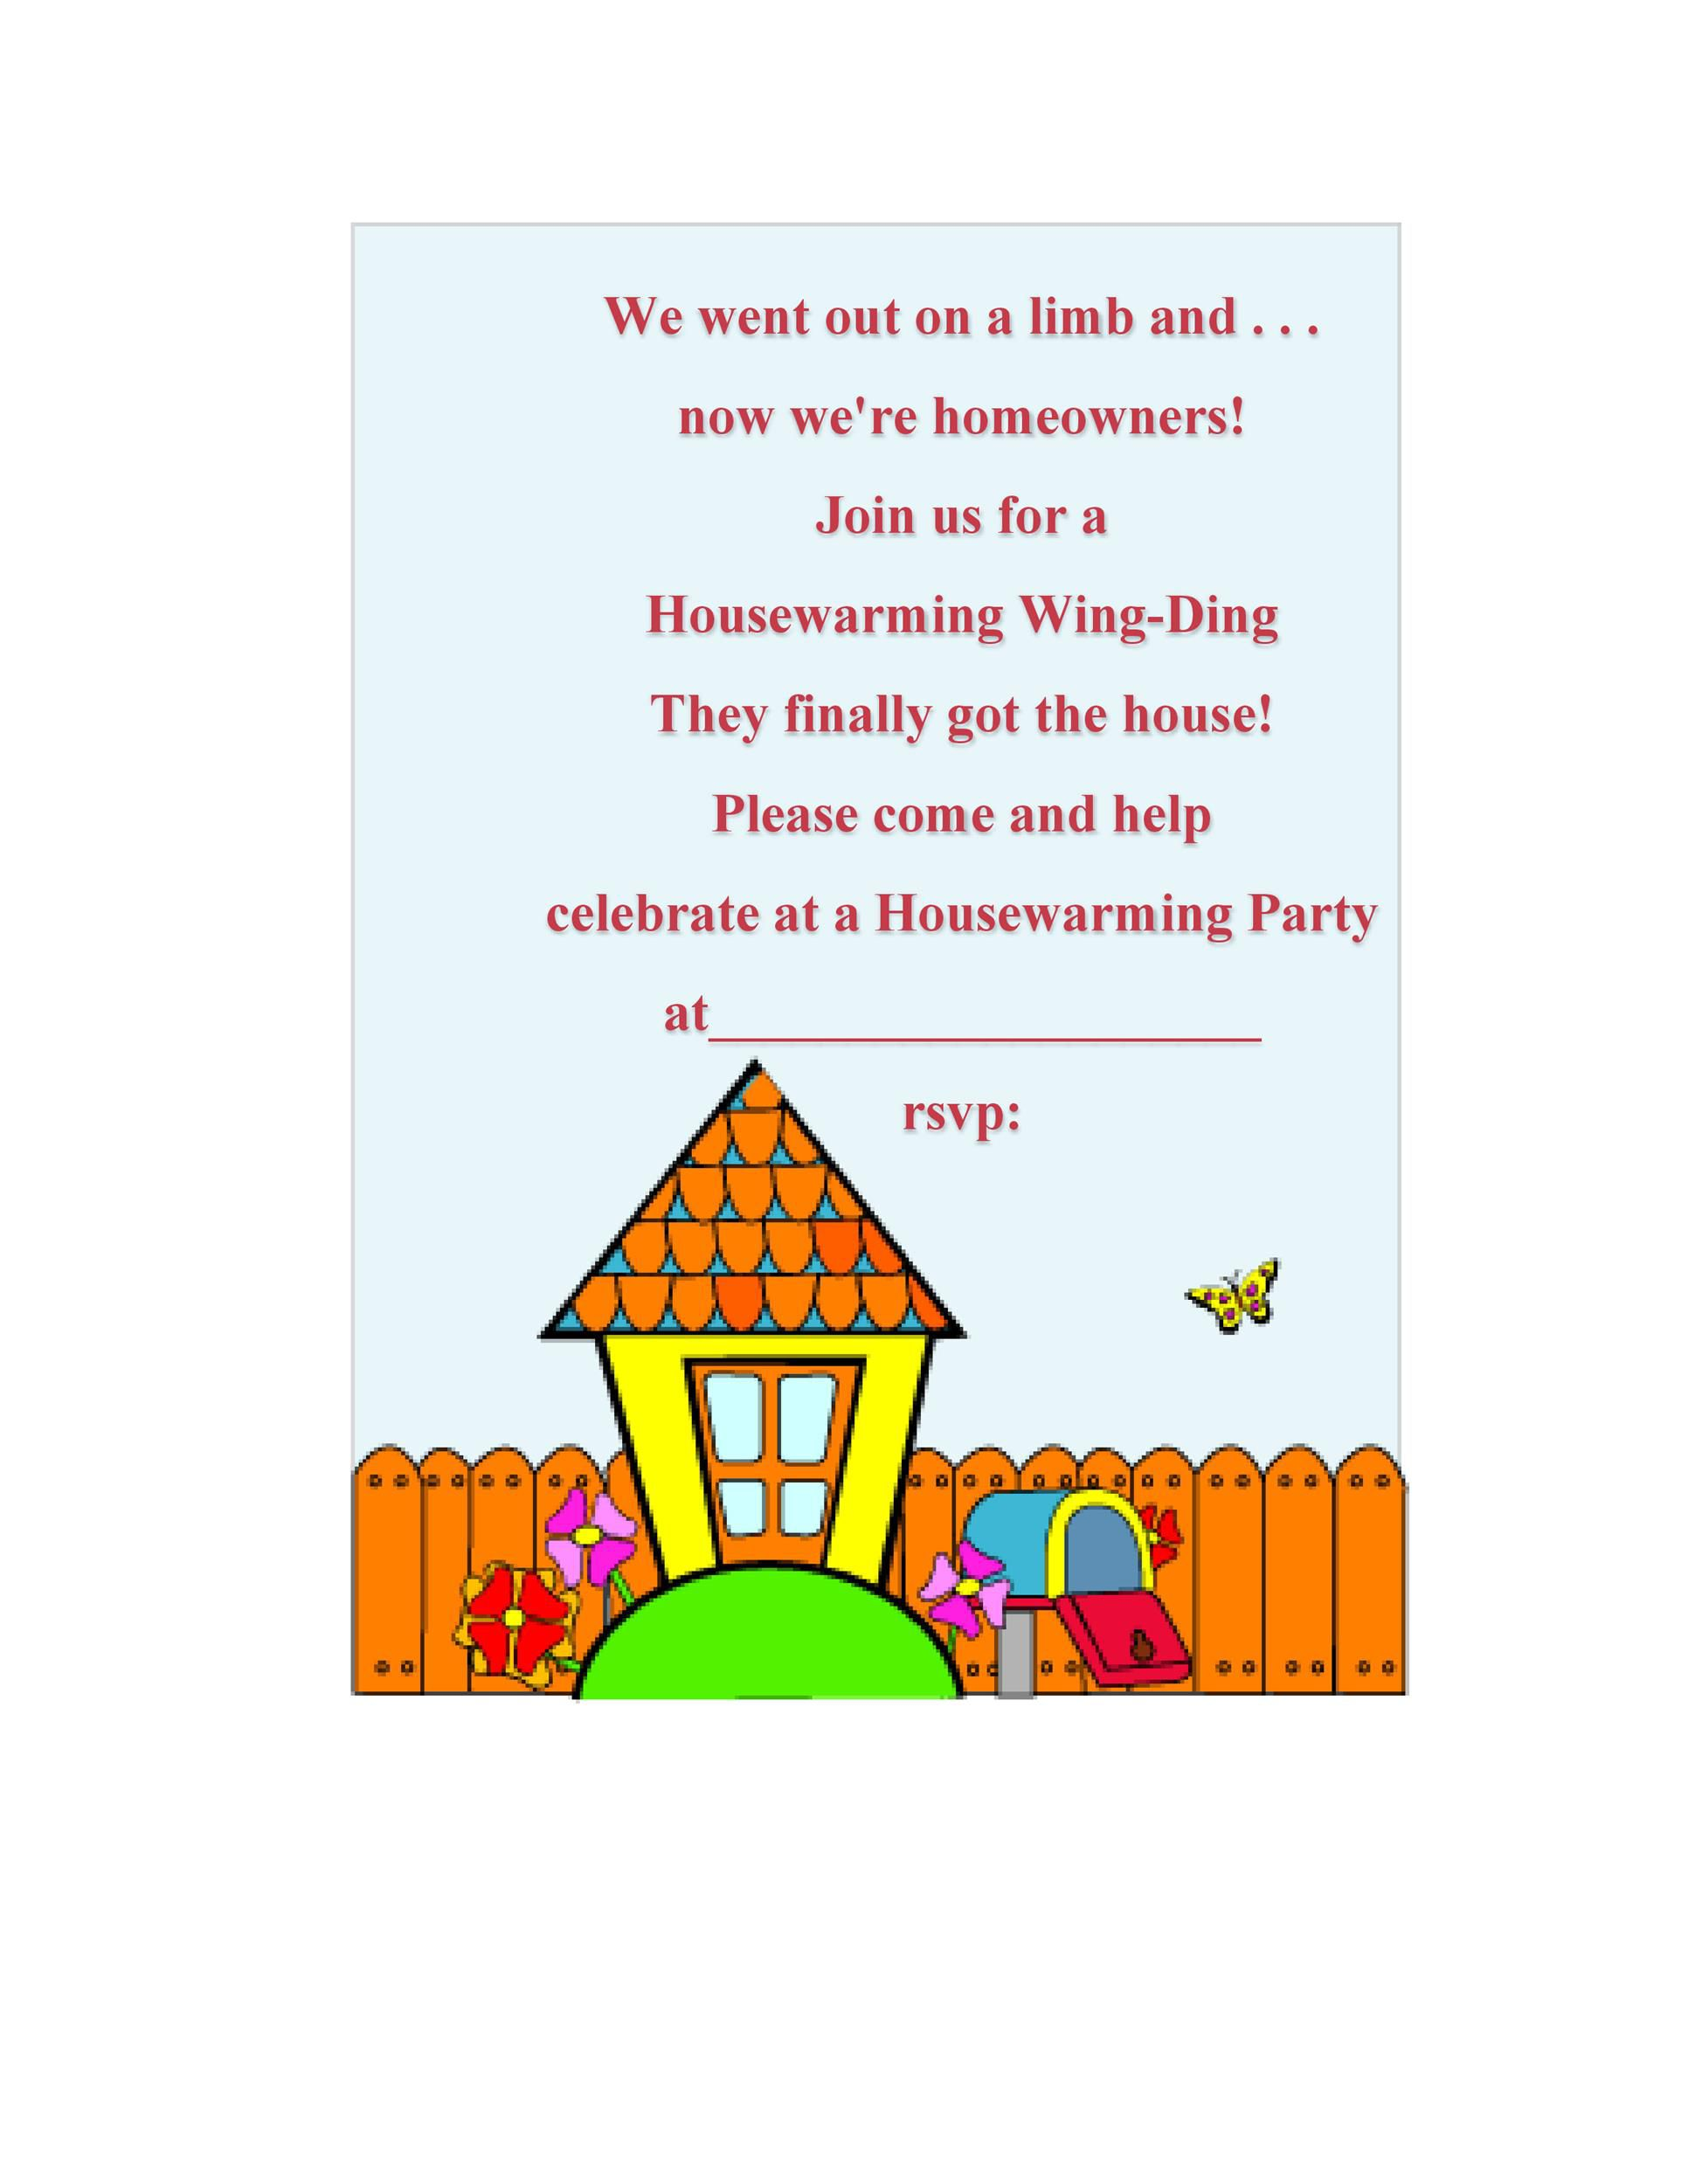 008 Top Housewarming Party Invitation Template Image  Templates Free Download CardFull